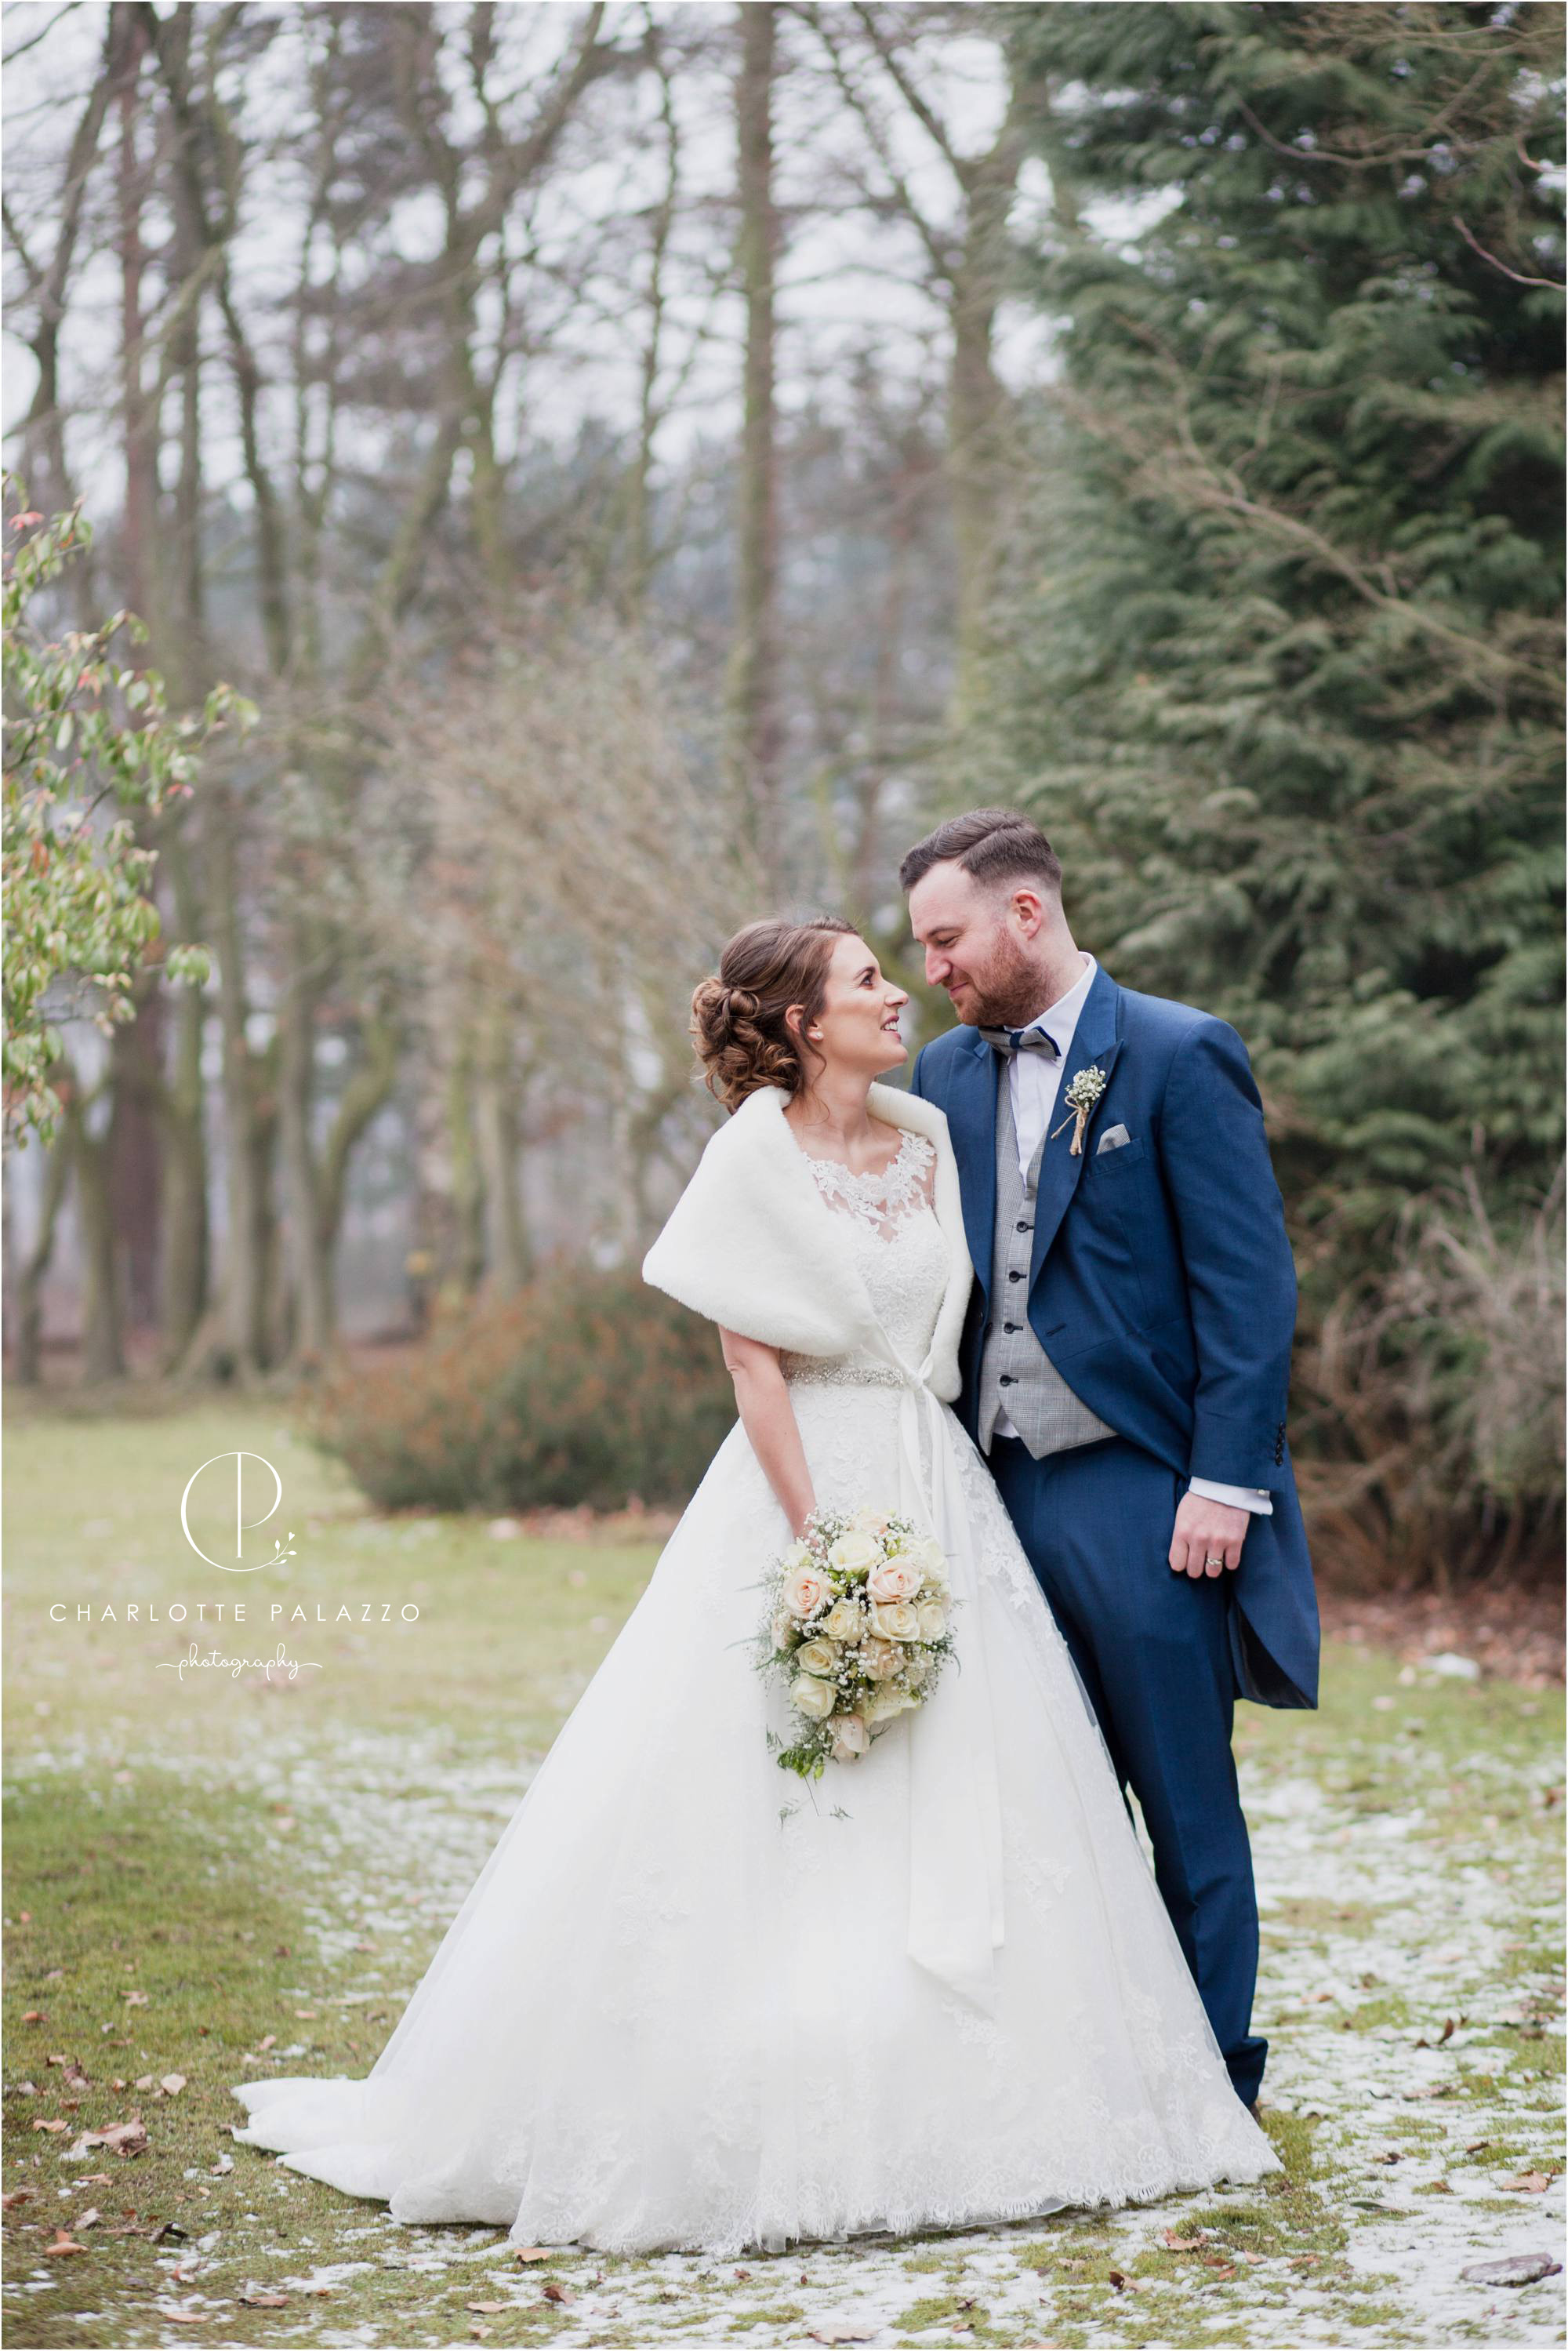 Kirst_Peter_Snowy_Nunsmere_Hall_Winter_Wedding_Cheshire_Photographer_0019.jpg